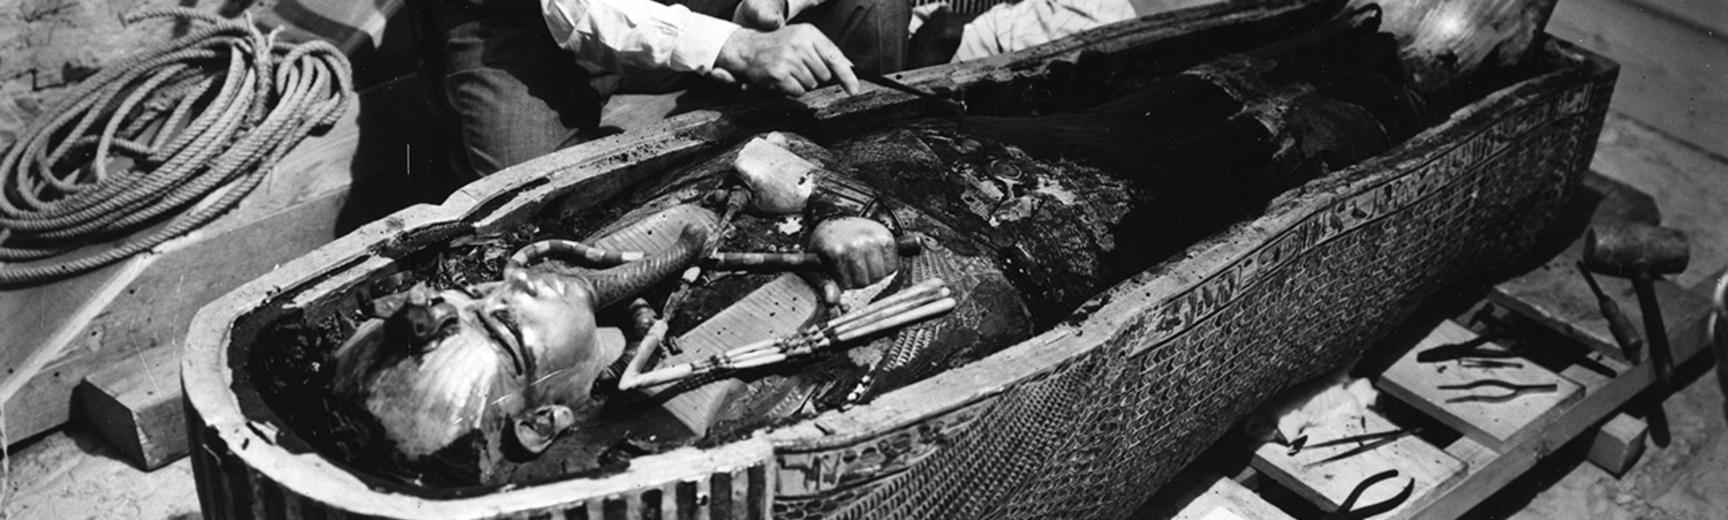 Black and white photograph of two people looking a Mummy in a Coffin